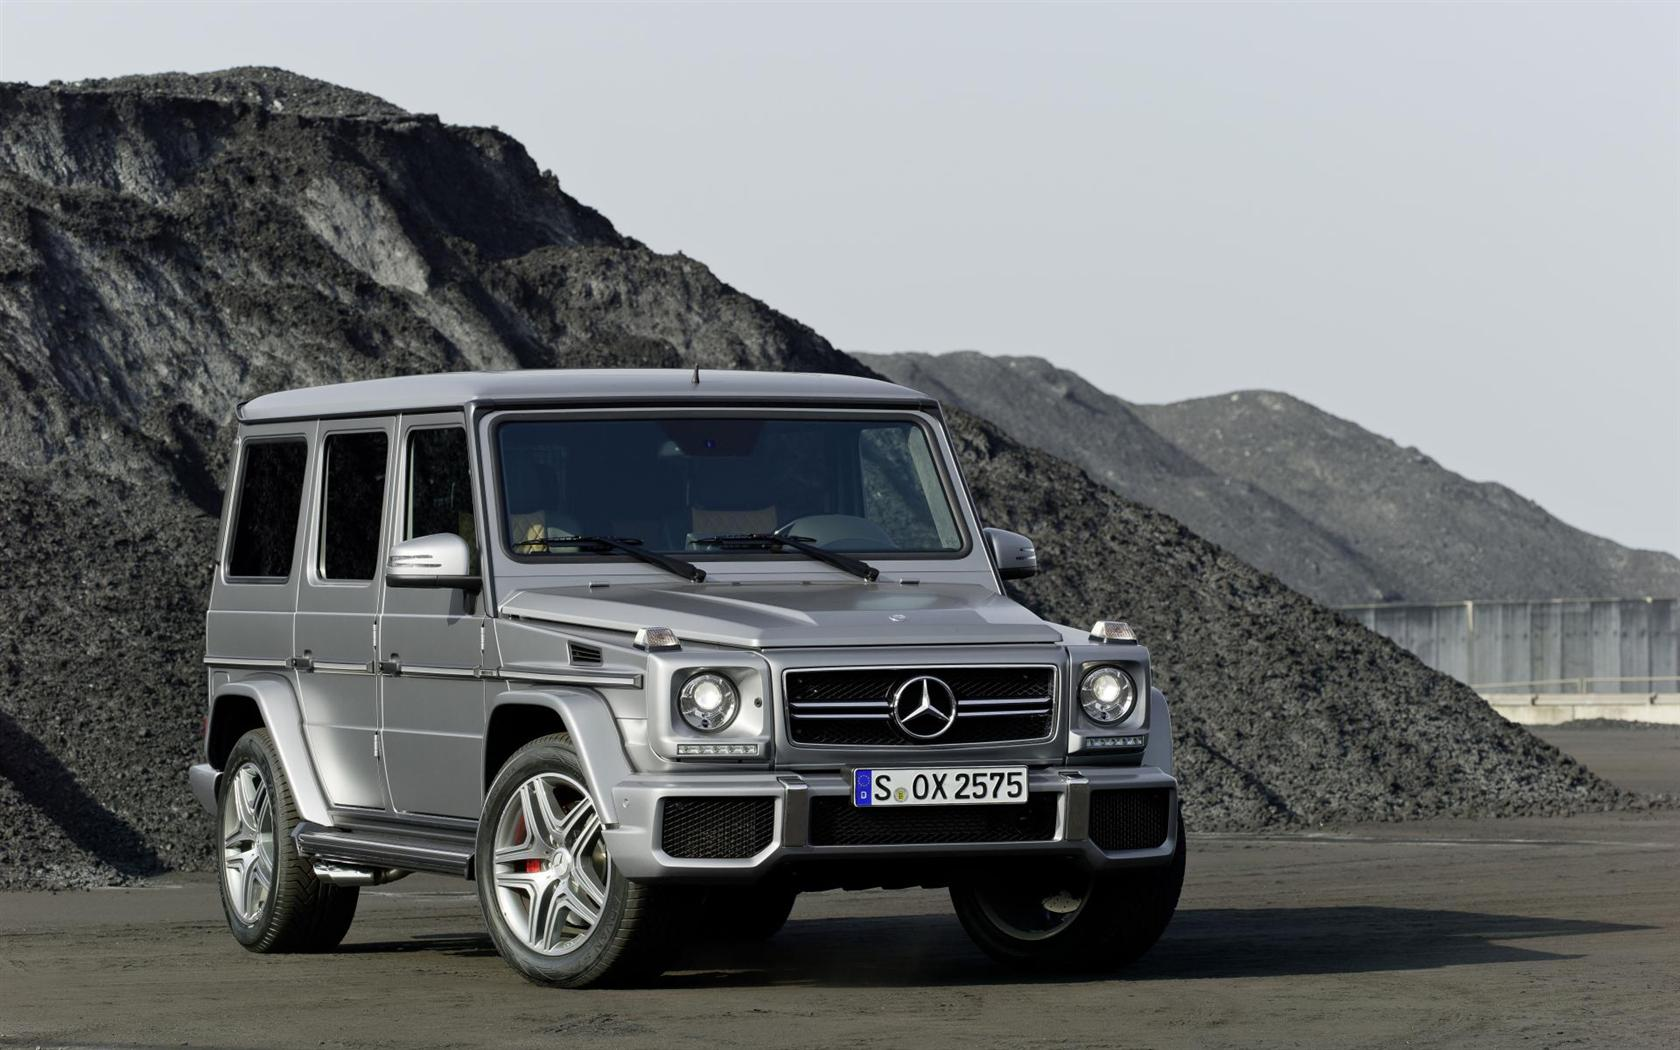 2013 mercedes benz g63 amg images photo 2013 mercedes g63 for Mercedes benz g63 amg 2013 price